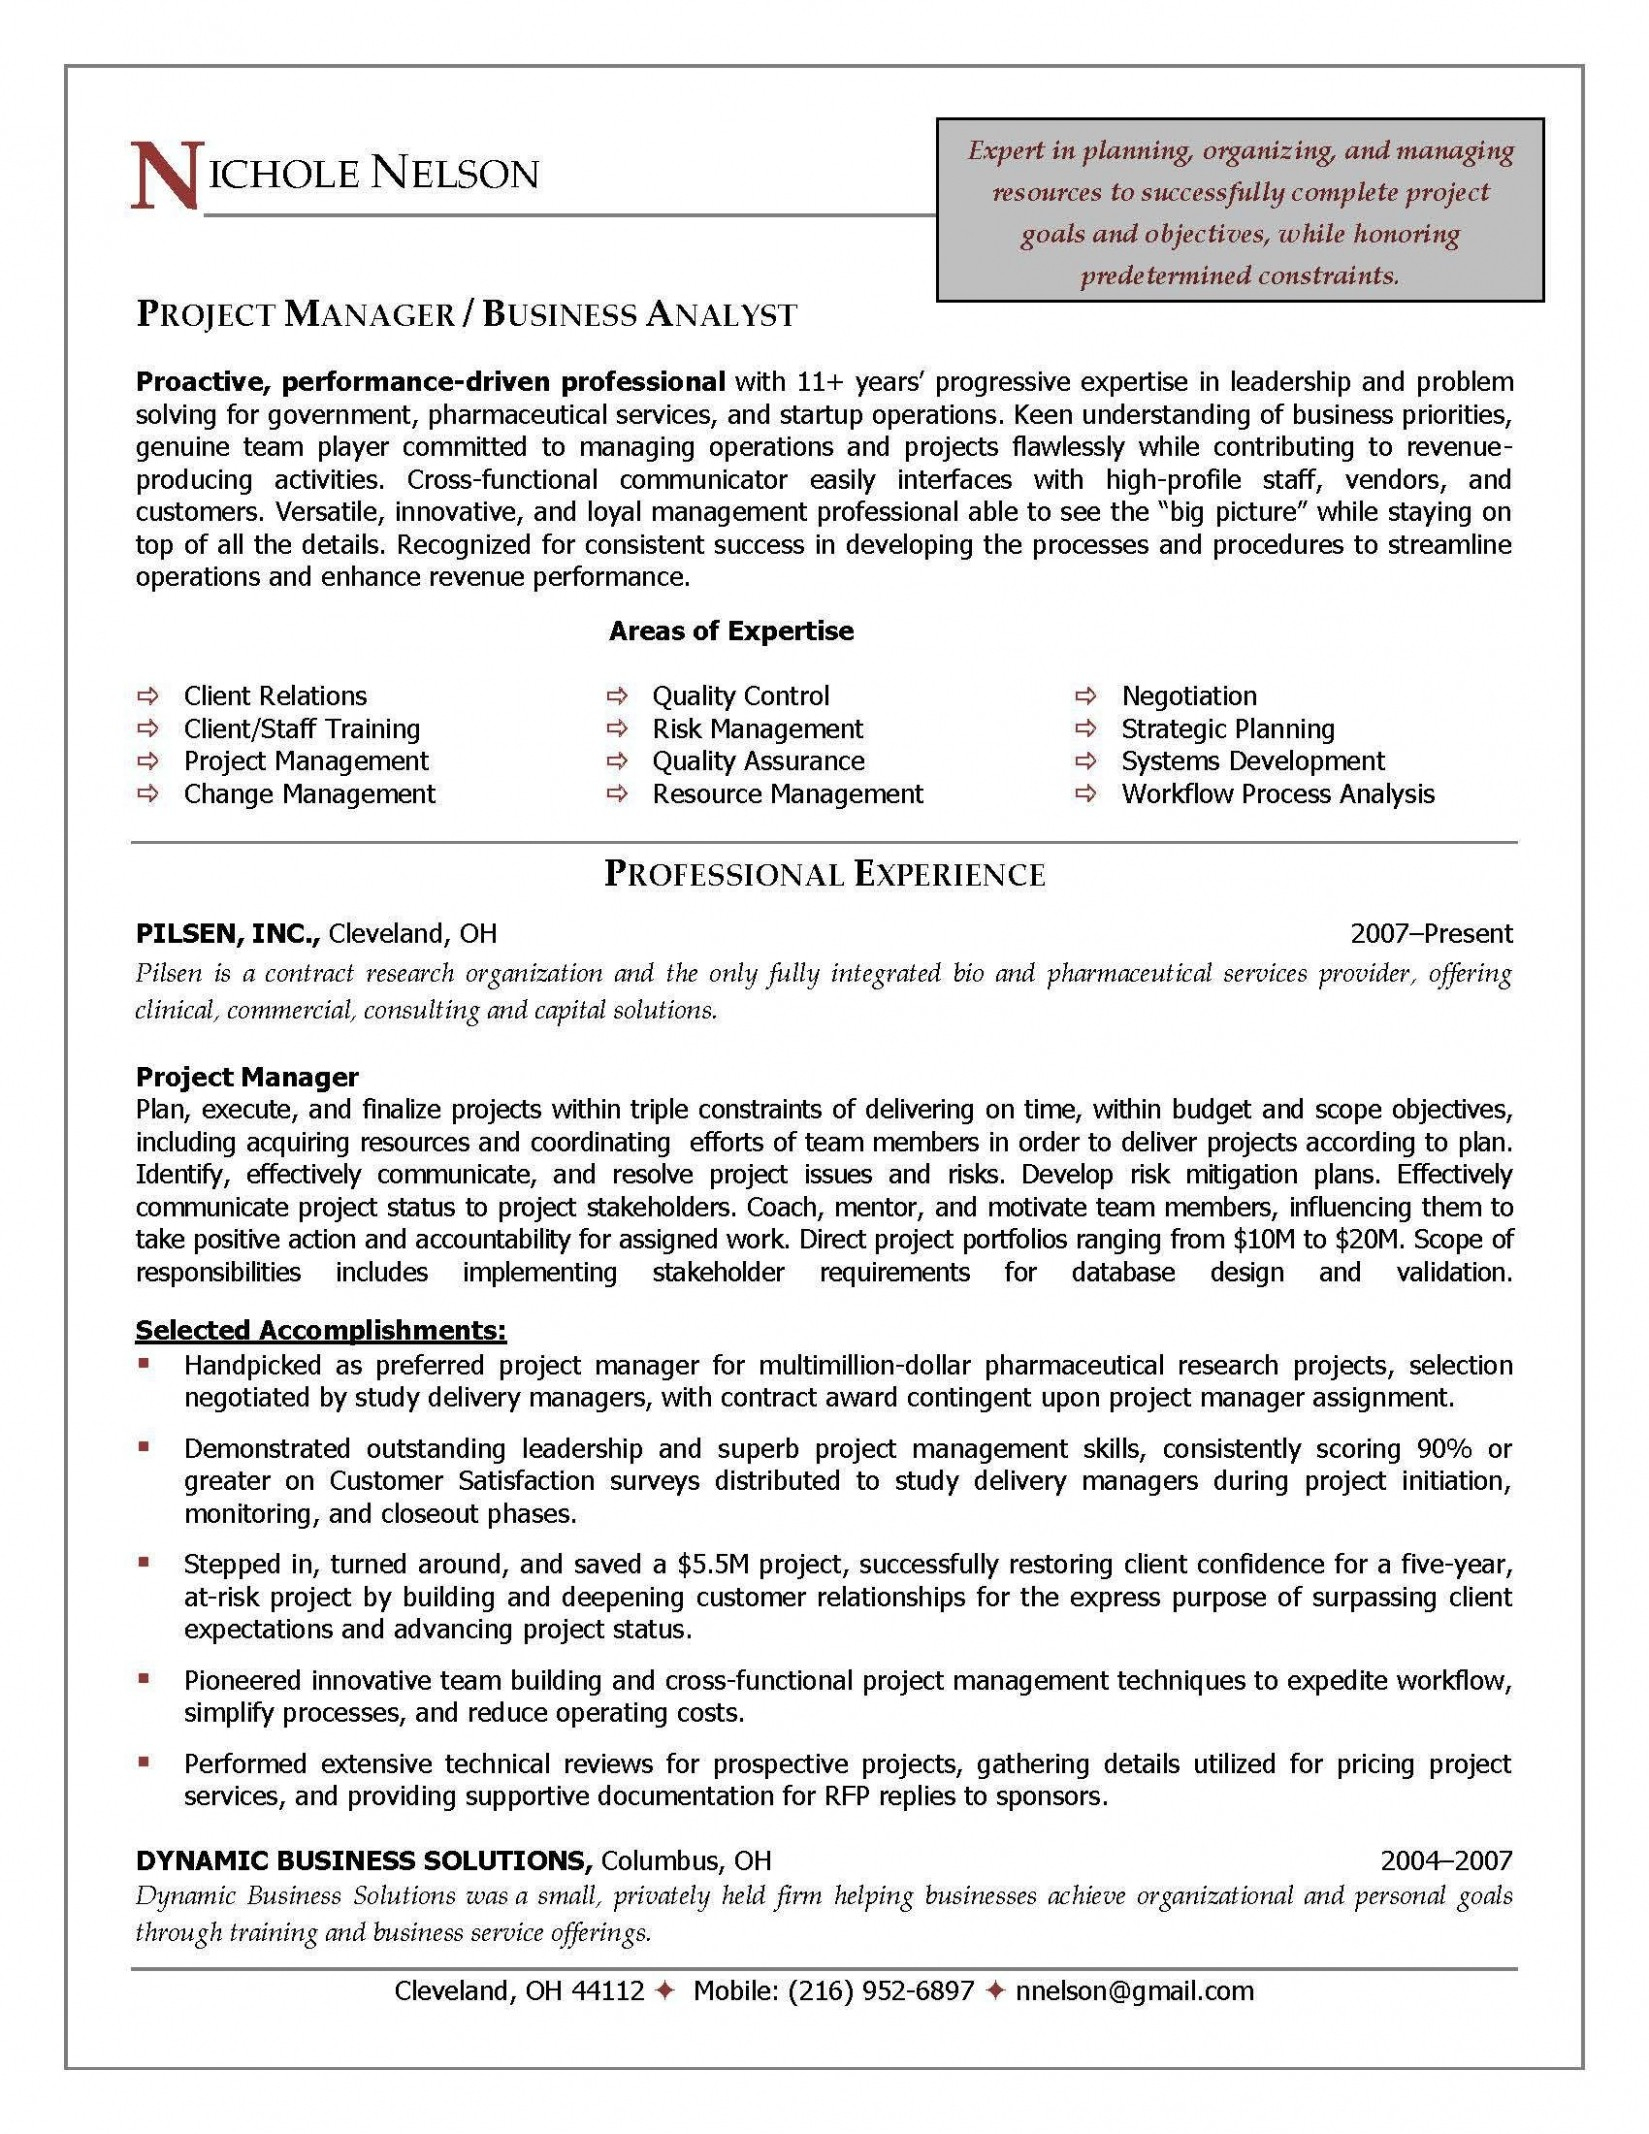 Quality assurance Resume - Quality Control Resume Unique Awesome Examples Resumes Ecologist